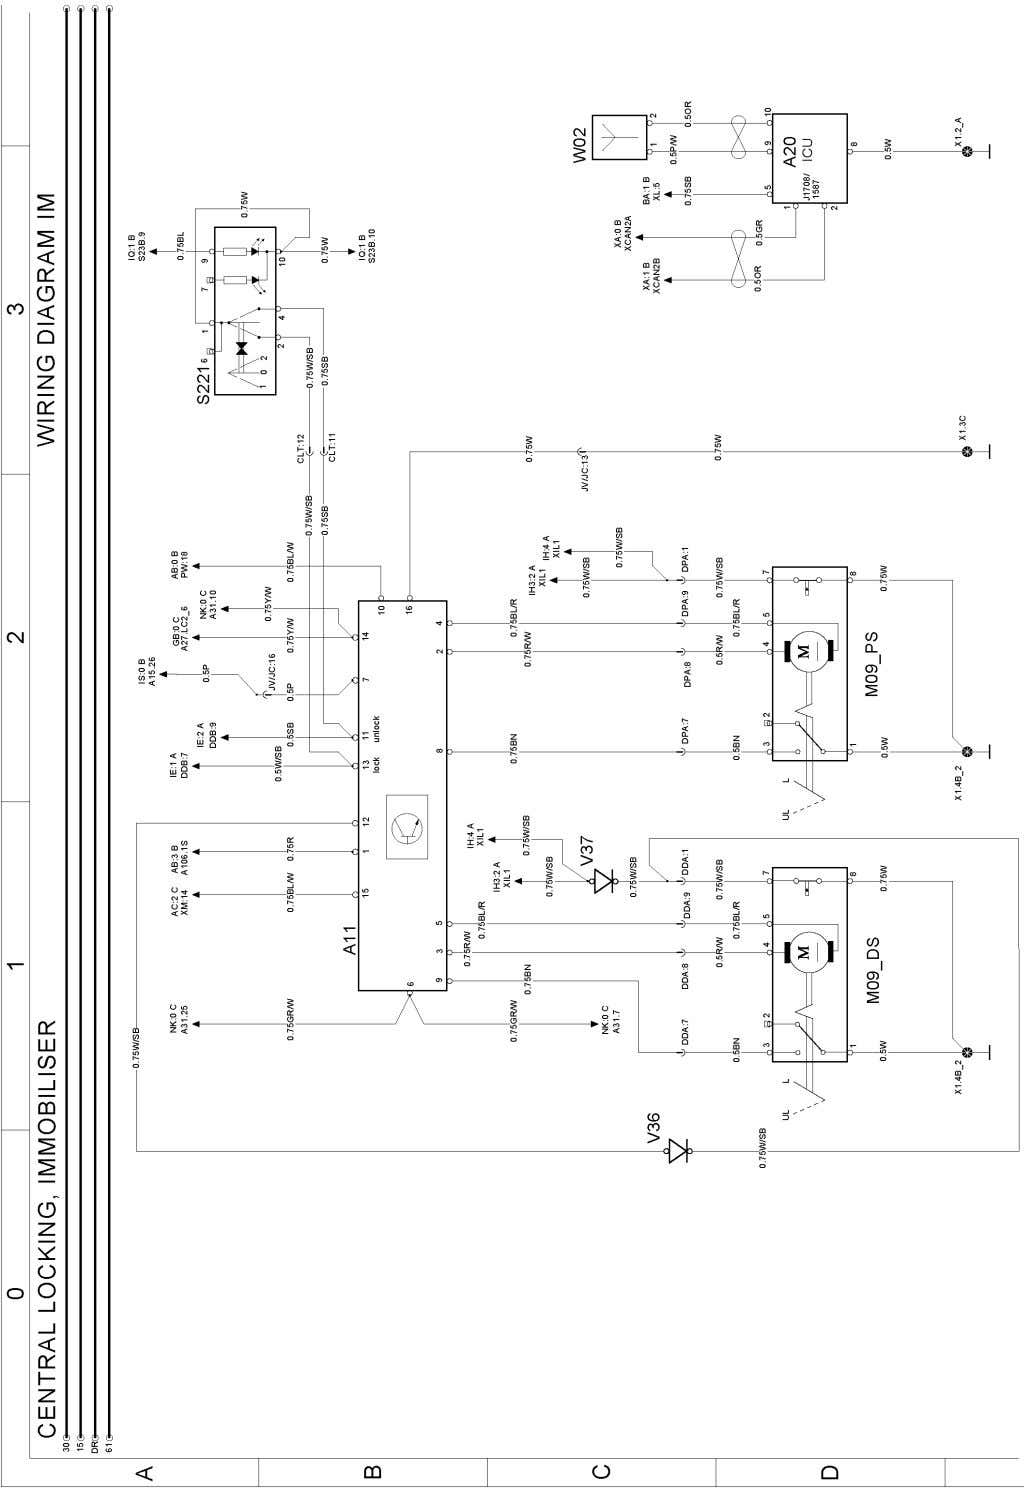 T3059901 Wiring diagram Page 93 (298)